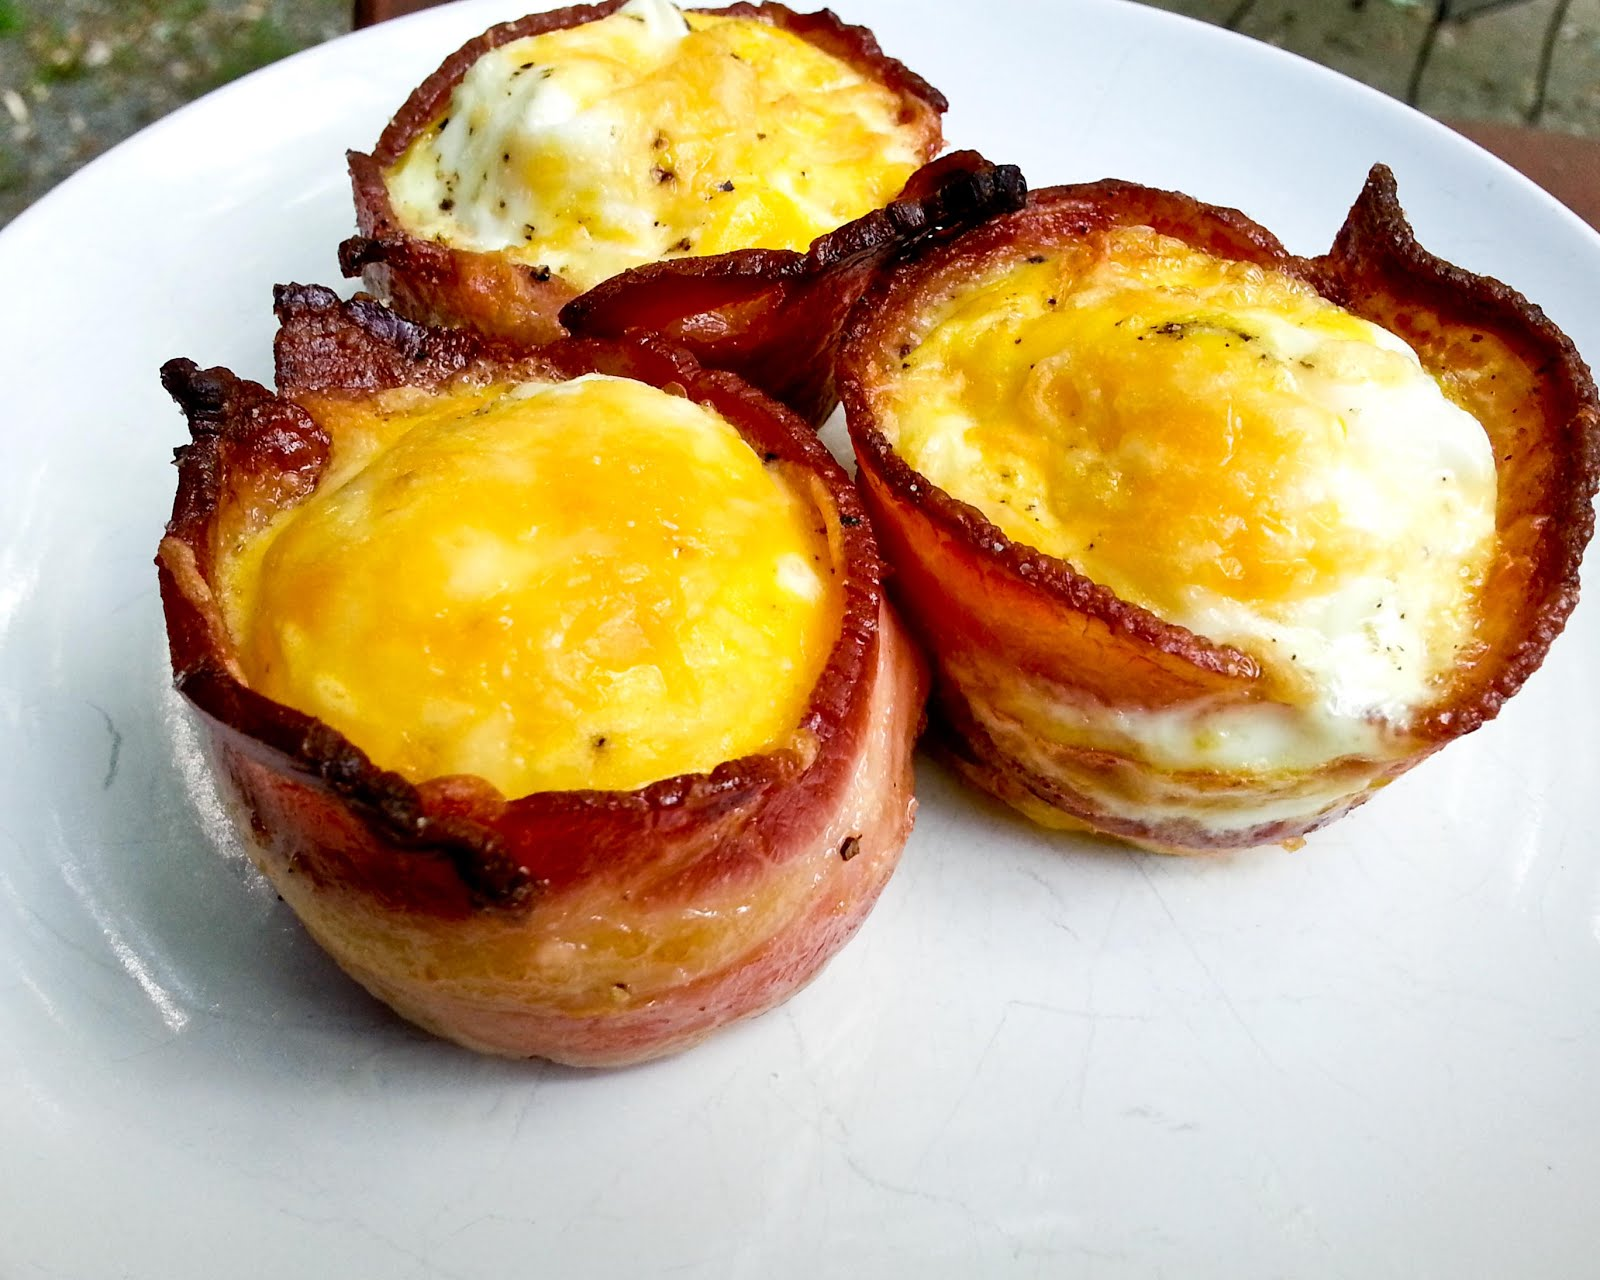 Bacon cups for Brekkie!